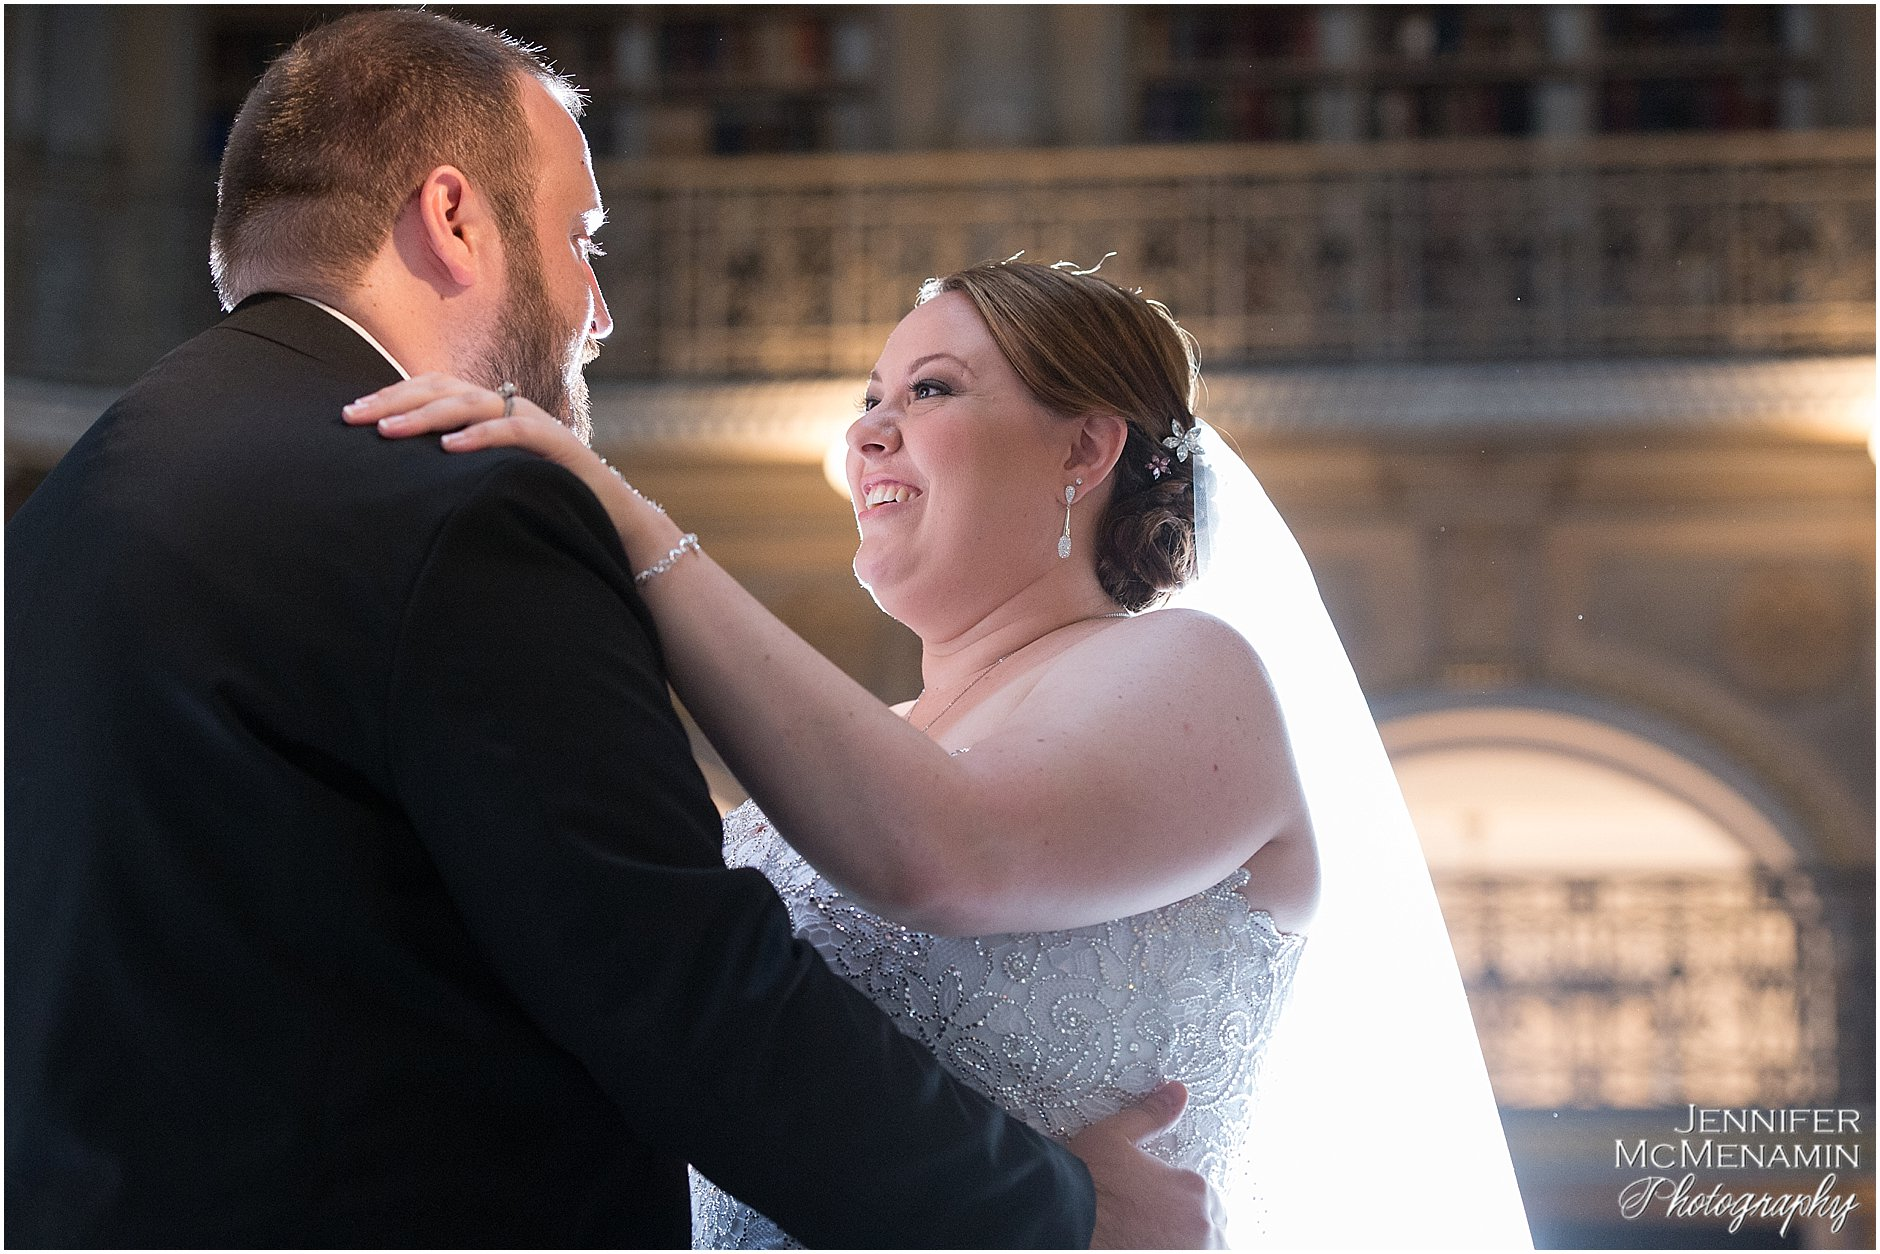 025-KinzlerShaull_02990_Jennifer-McMenamin-Photography-Peabody-Library-wedding